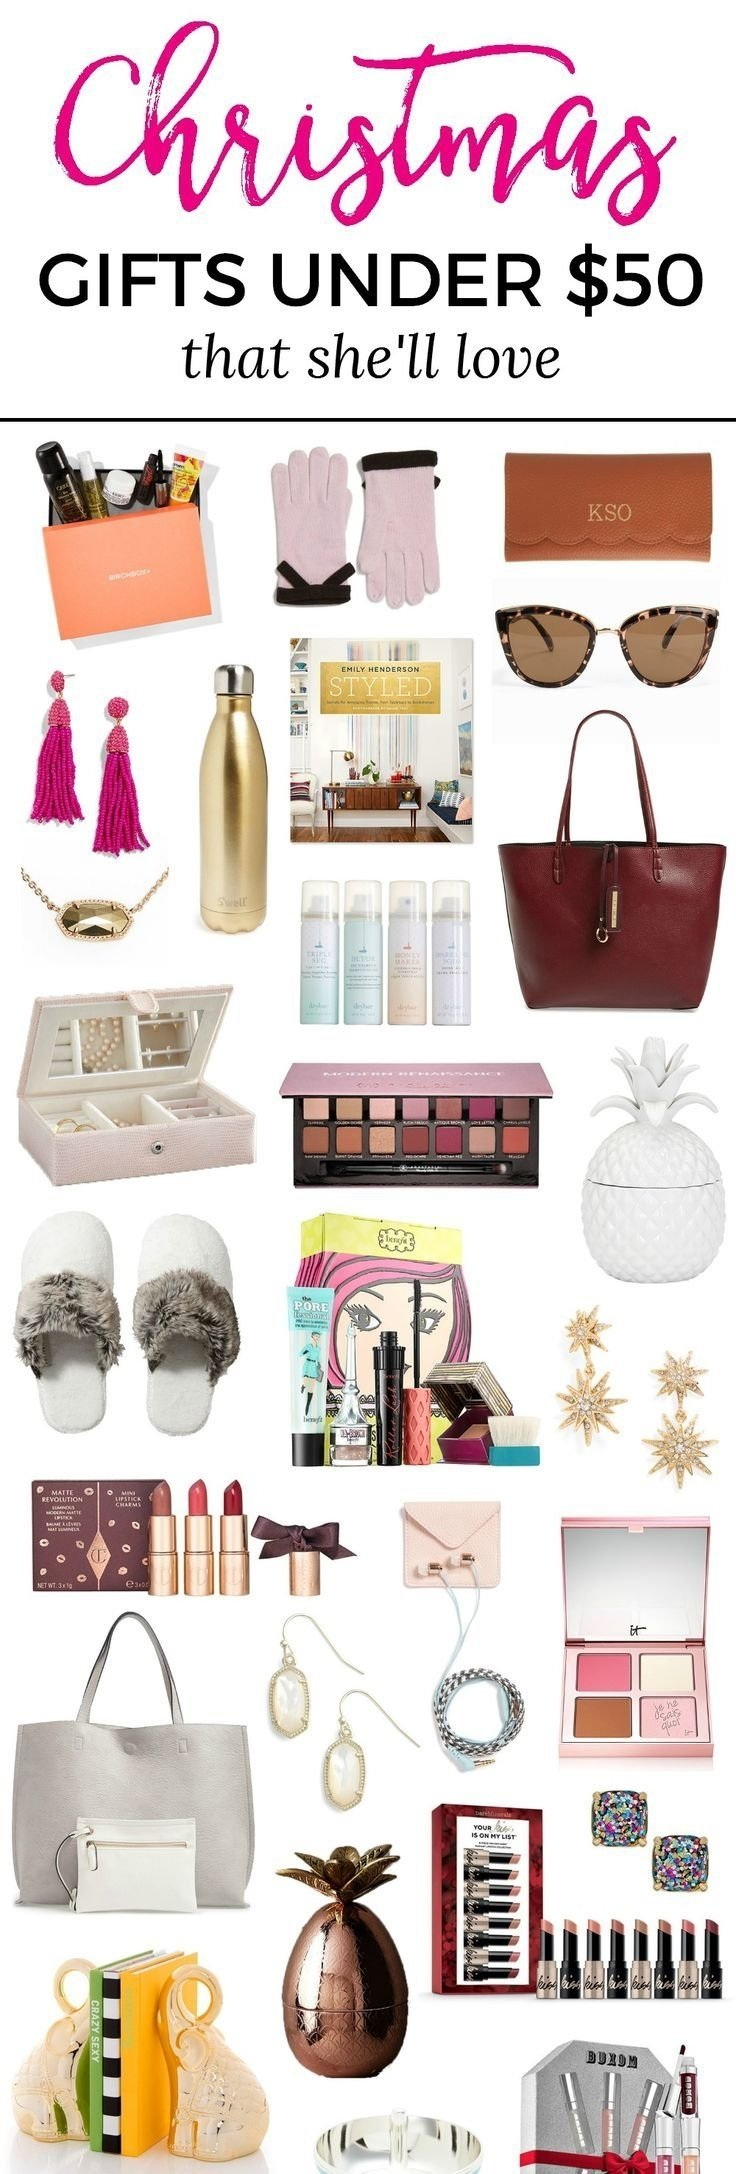 10 Cute Christmas Present Ideas For Women the best christmas gift ideas for women under 50 ashley brooke 1 2021